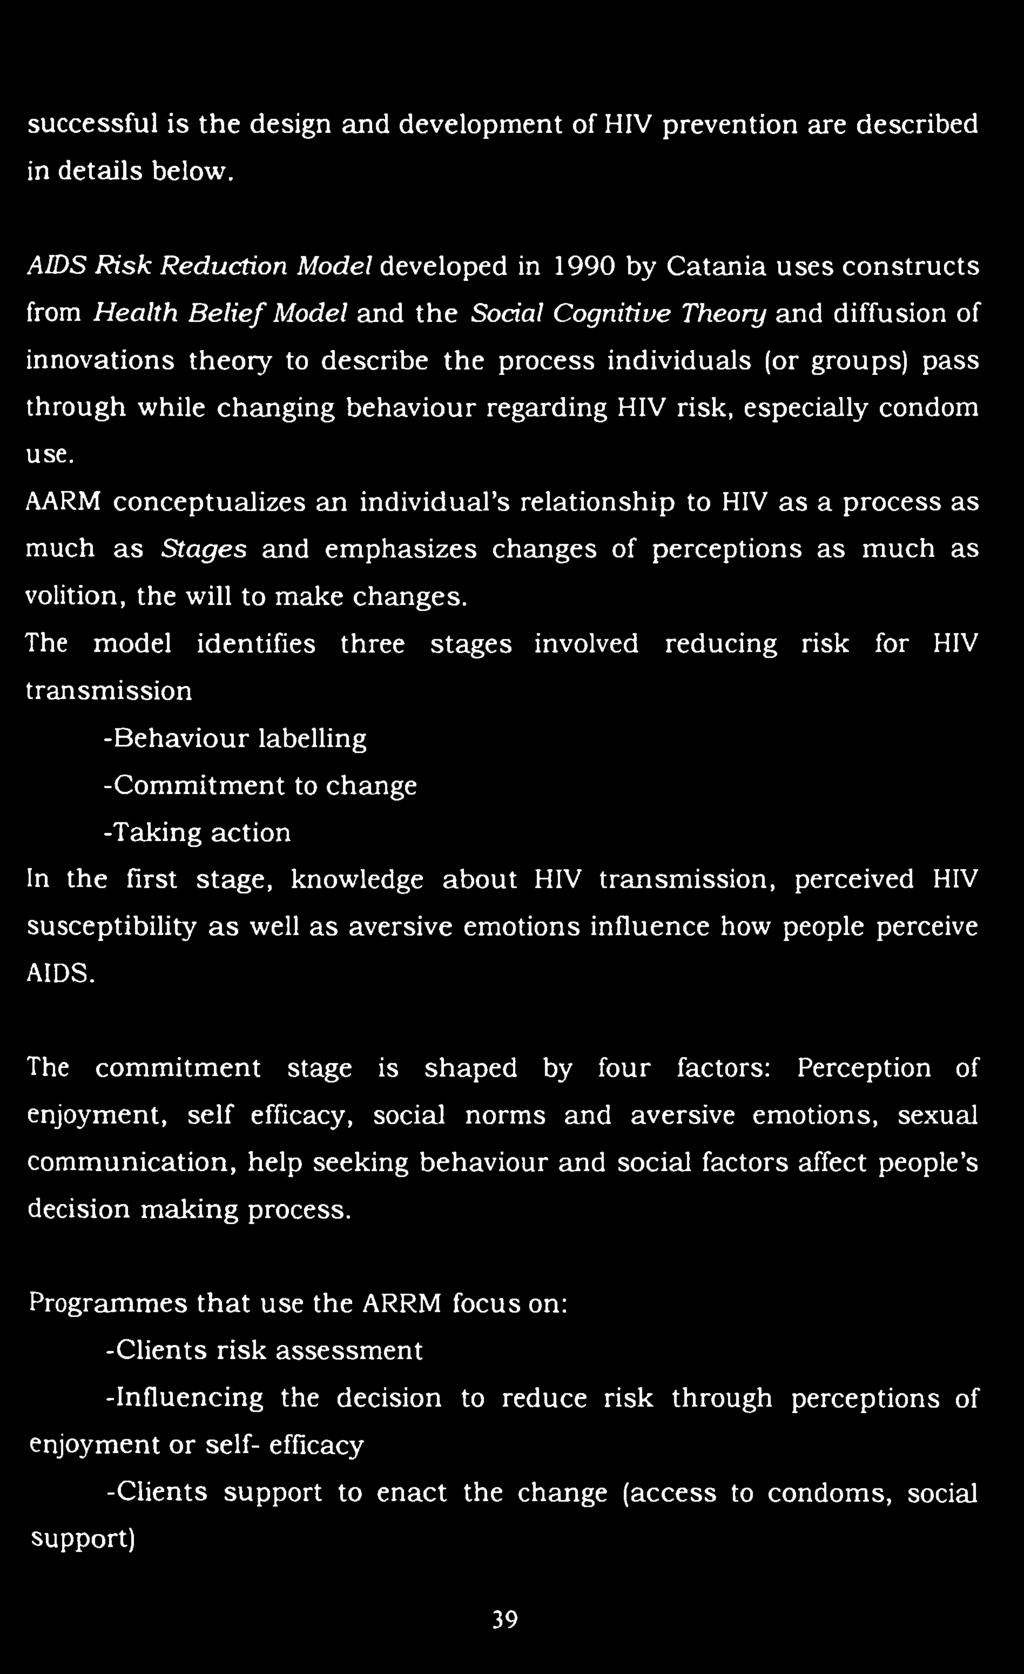 (or groups) pass through while changing behaviour regarding HIV risk, especially condom use.